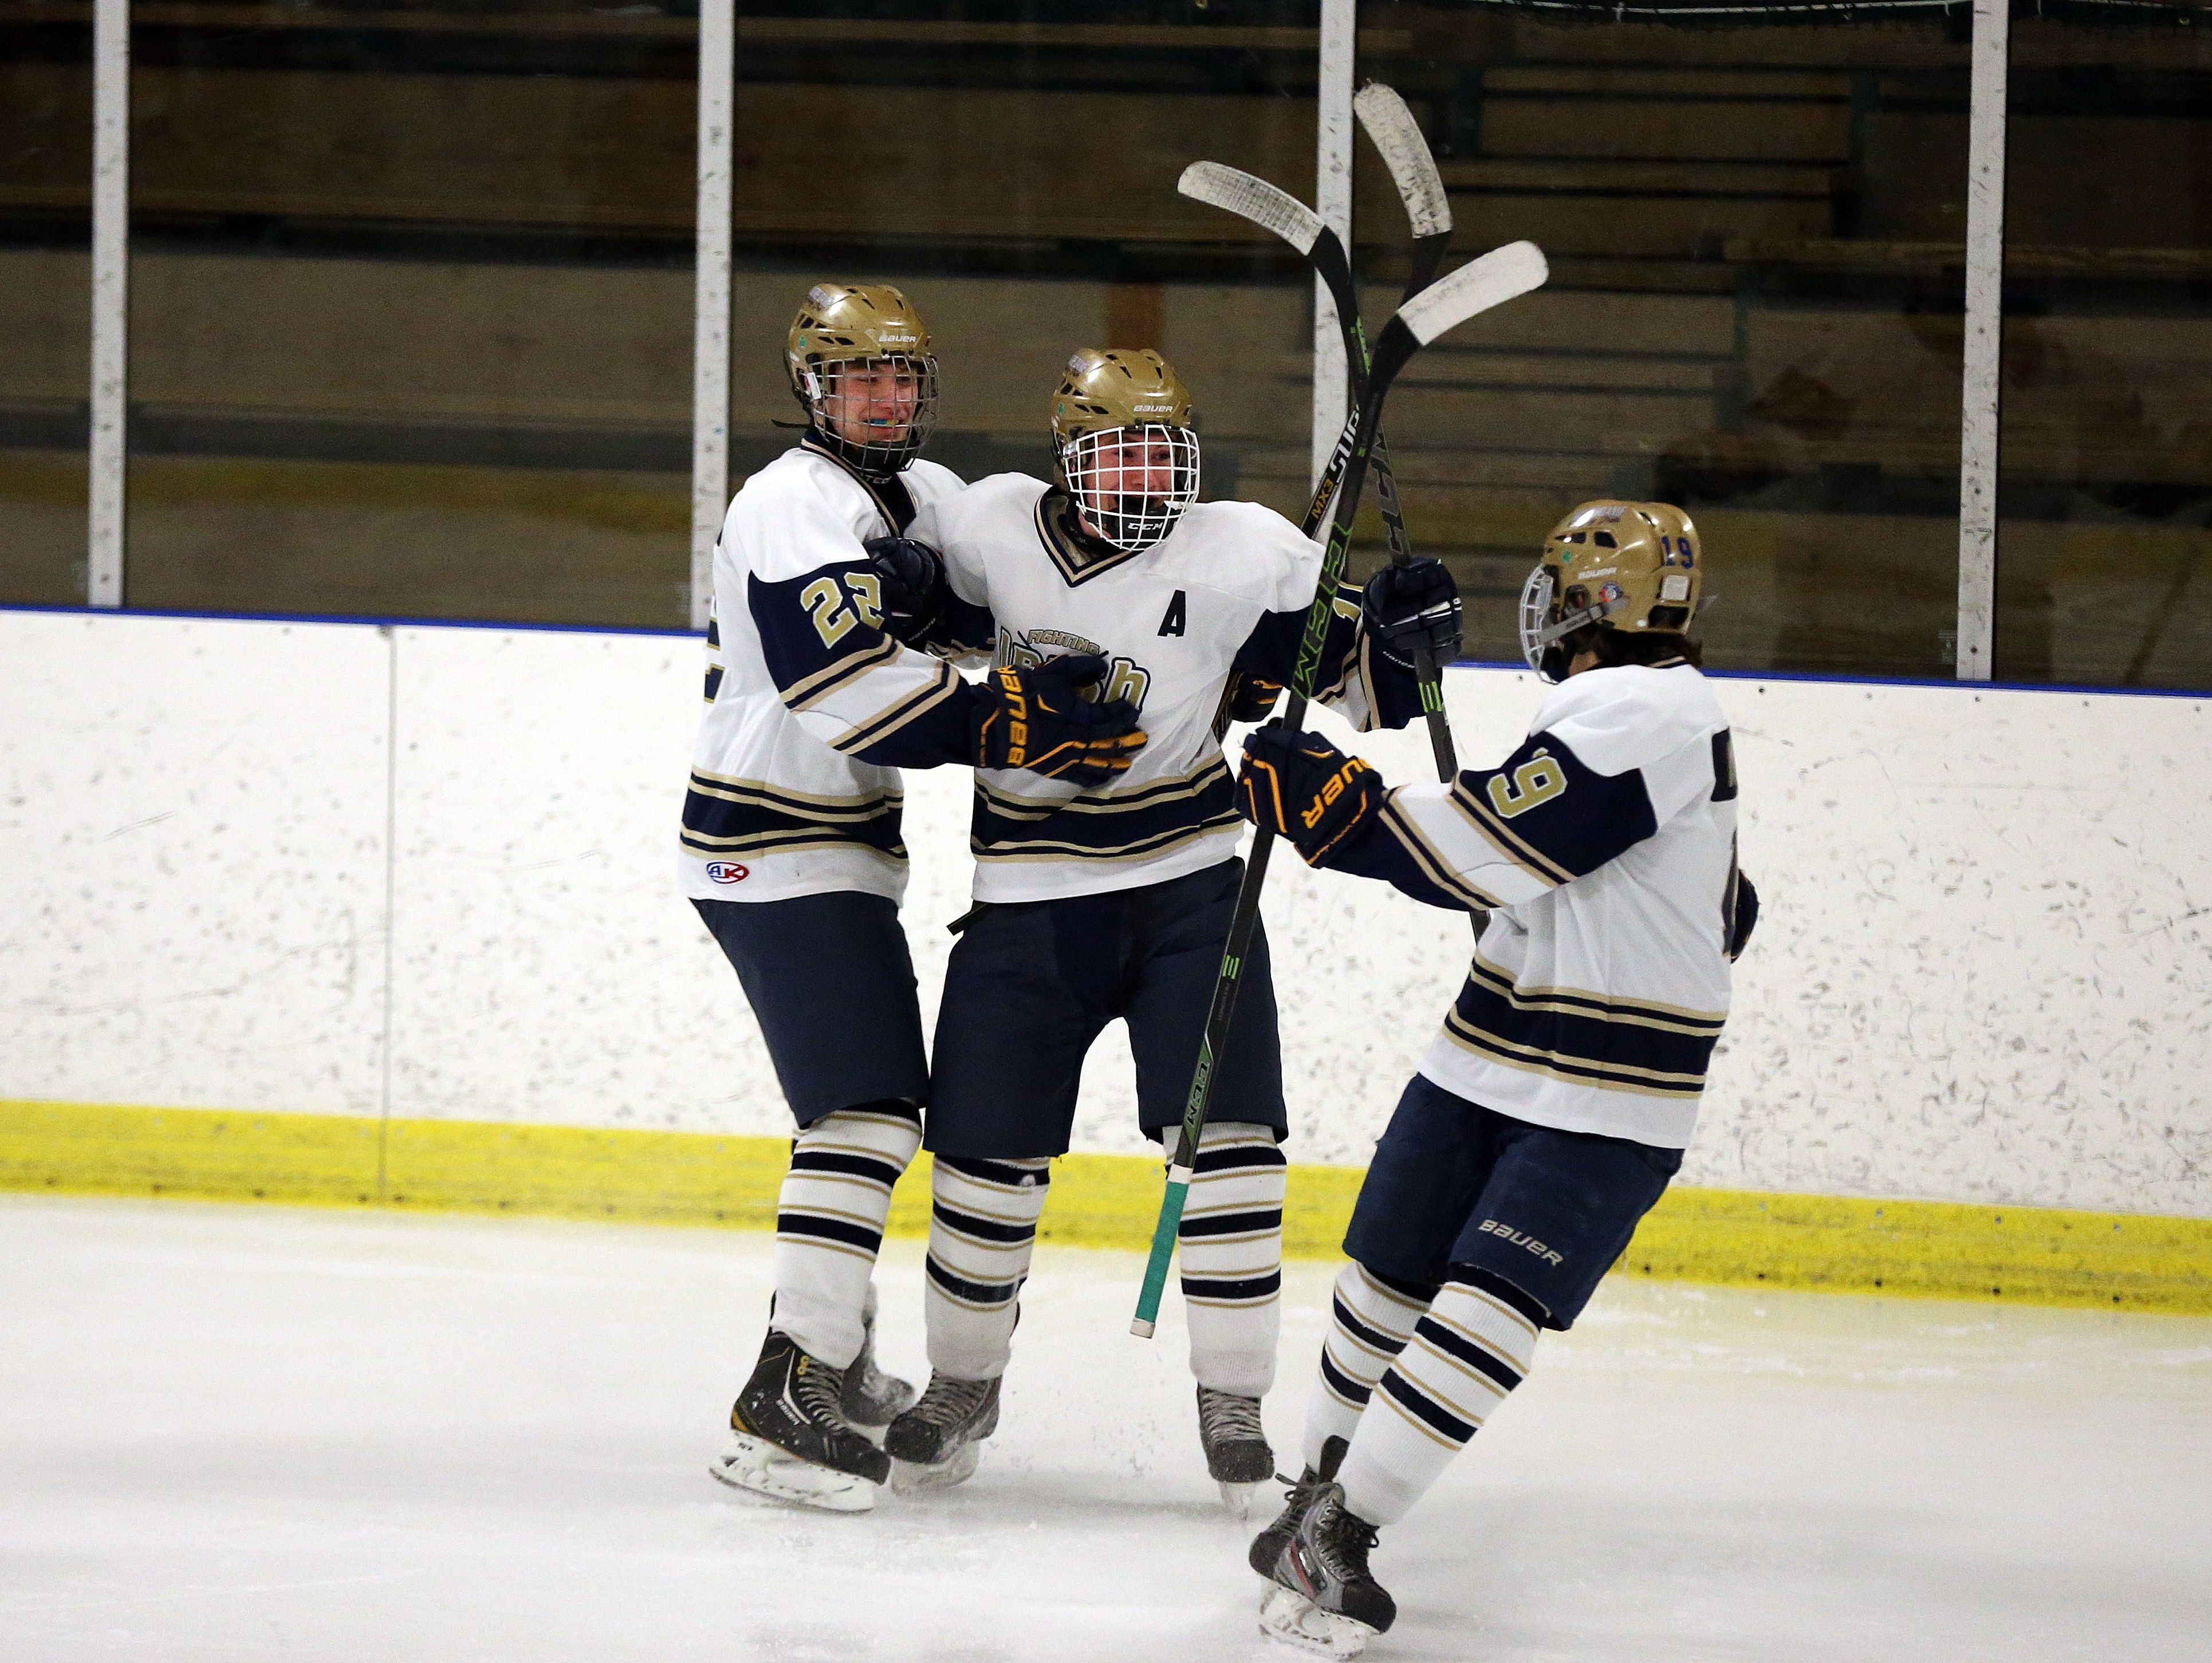 Batavia Notre Dame's Ryan Webster, center, celebrates his goal with teammates Henrik Toiviainen, left, and Ryan Antinore in a game against Rush-Henrietta.